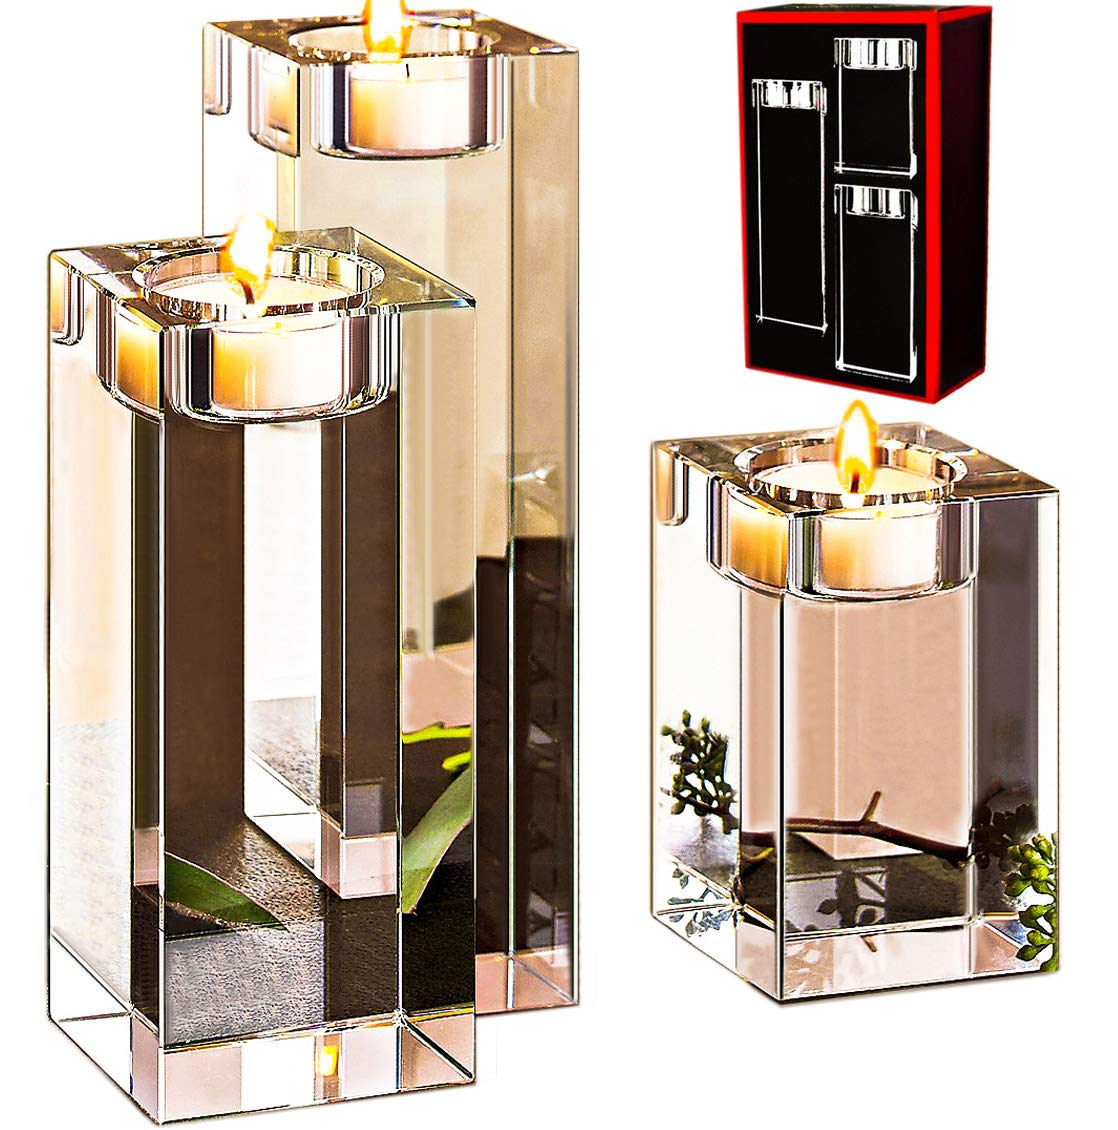 Le Sens Amazing Home Large Crystal Candle Holders Set of 3, 3.1/4.7/6.2 inches Height, Elegant Heavy Solid Square Tealight Holders Set Centerpieces for Home Decoration, Wedding and Anniversary by Le Sens Amazing Home